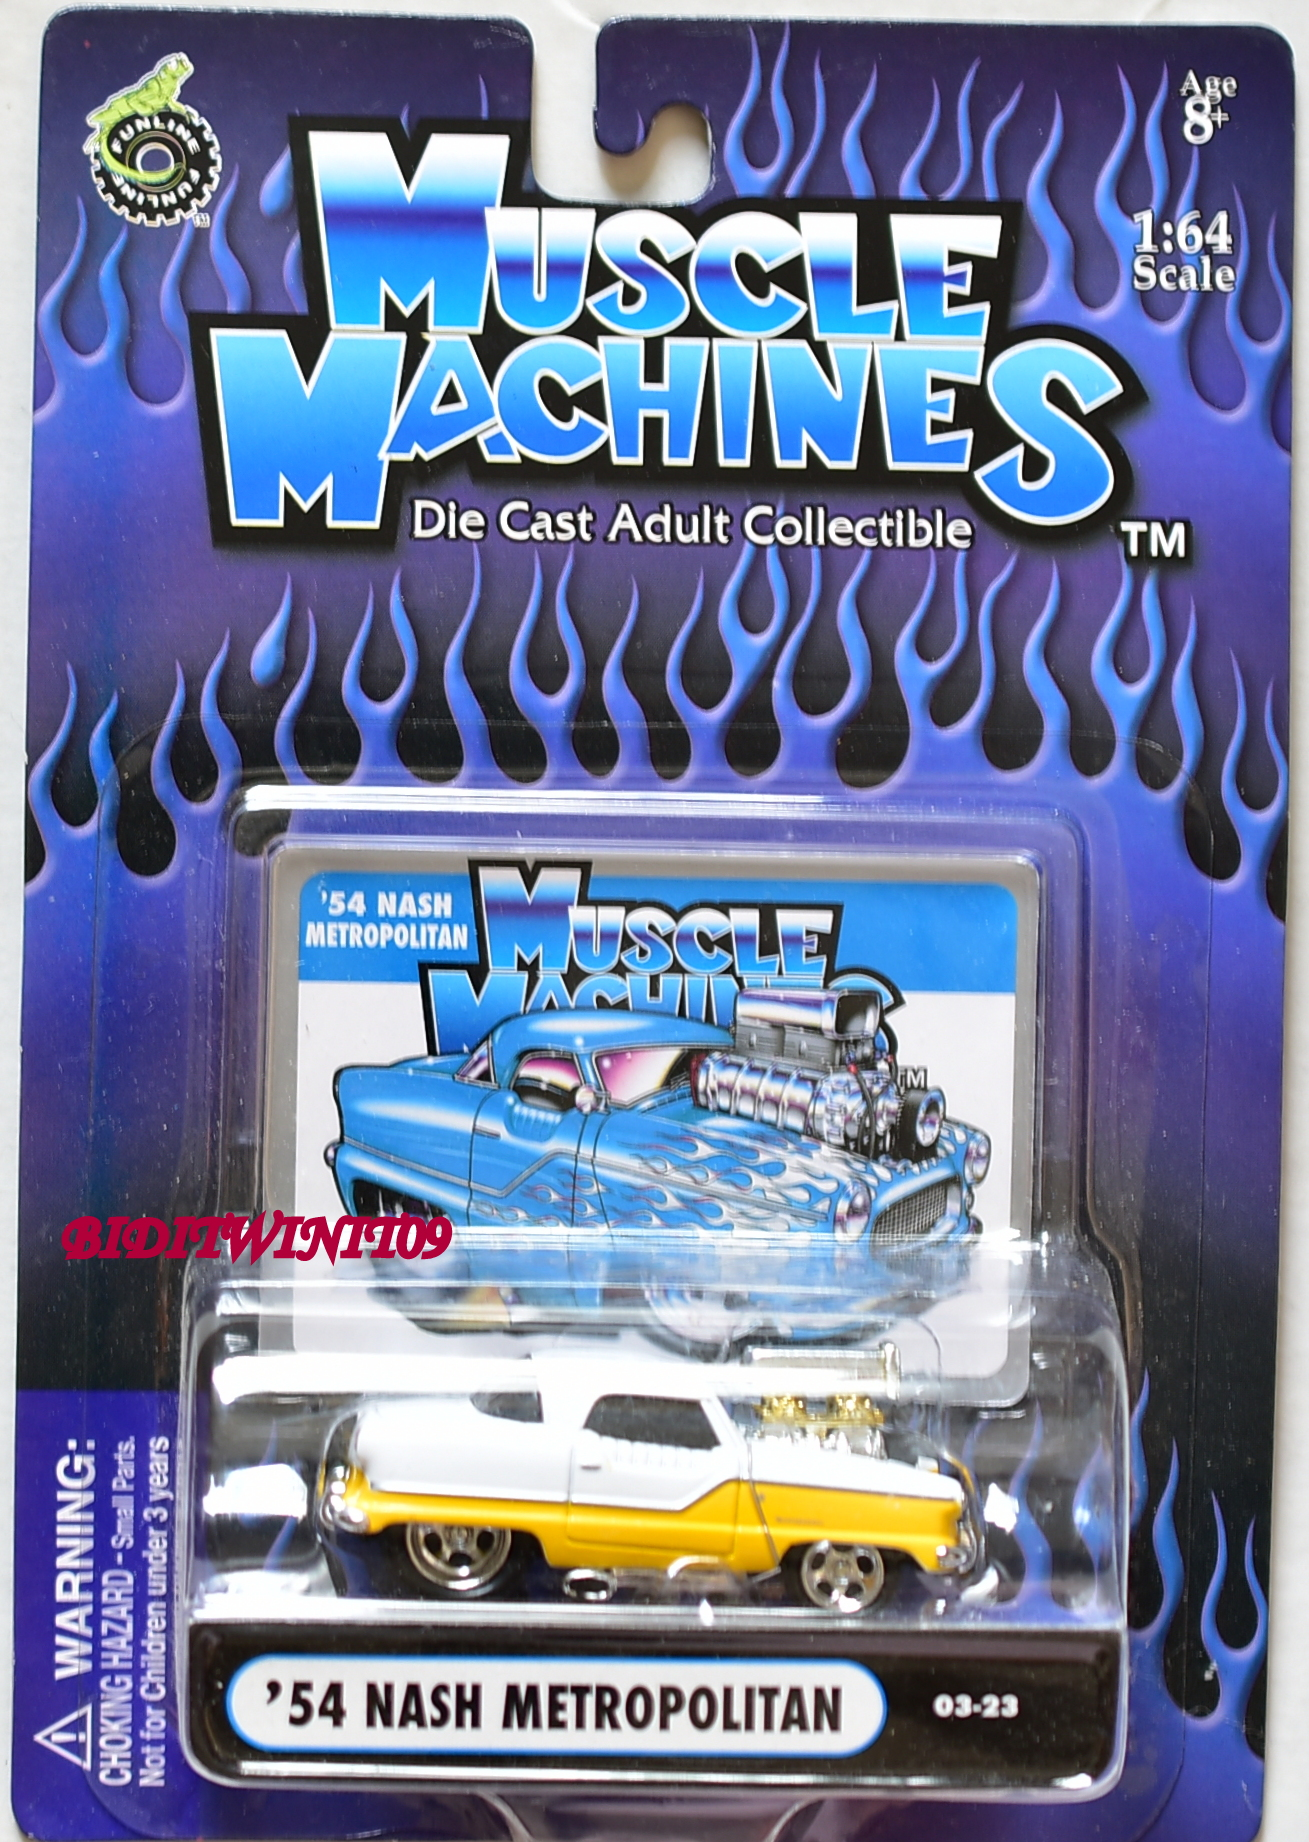 MUSCLE MACHINES '54 NASH METROPOLITAN 03-23 1:64 SCALE E+